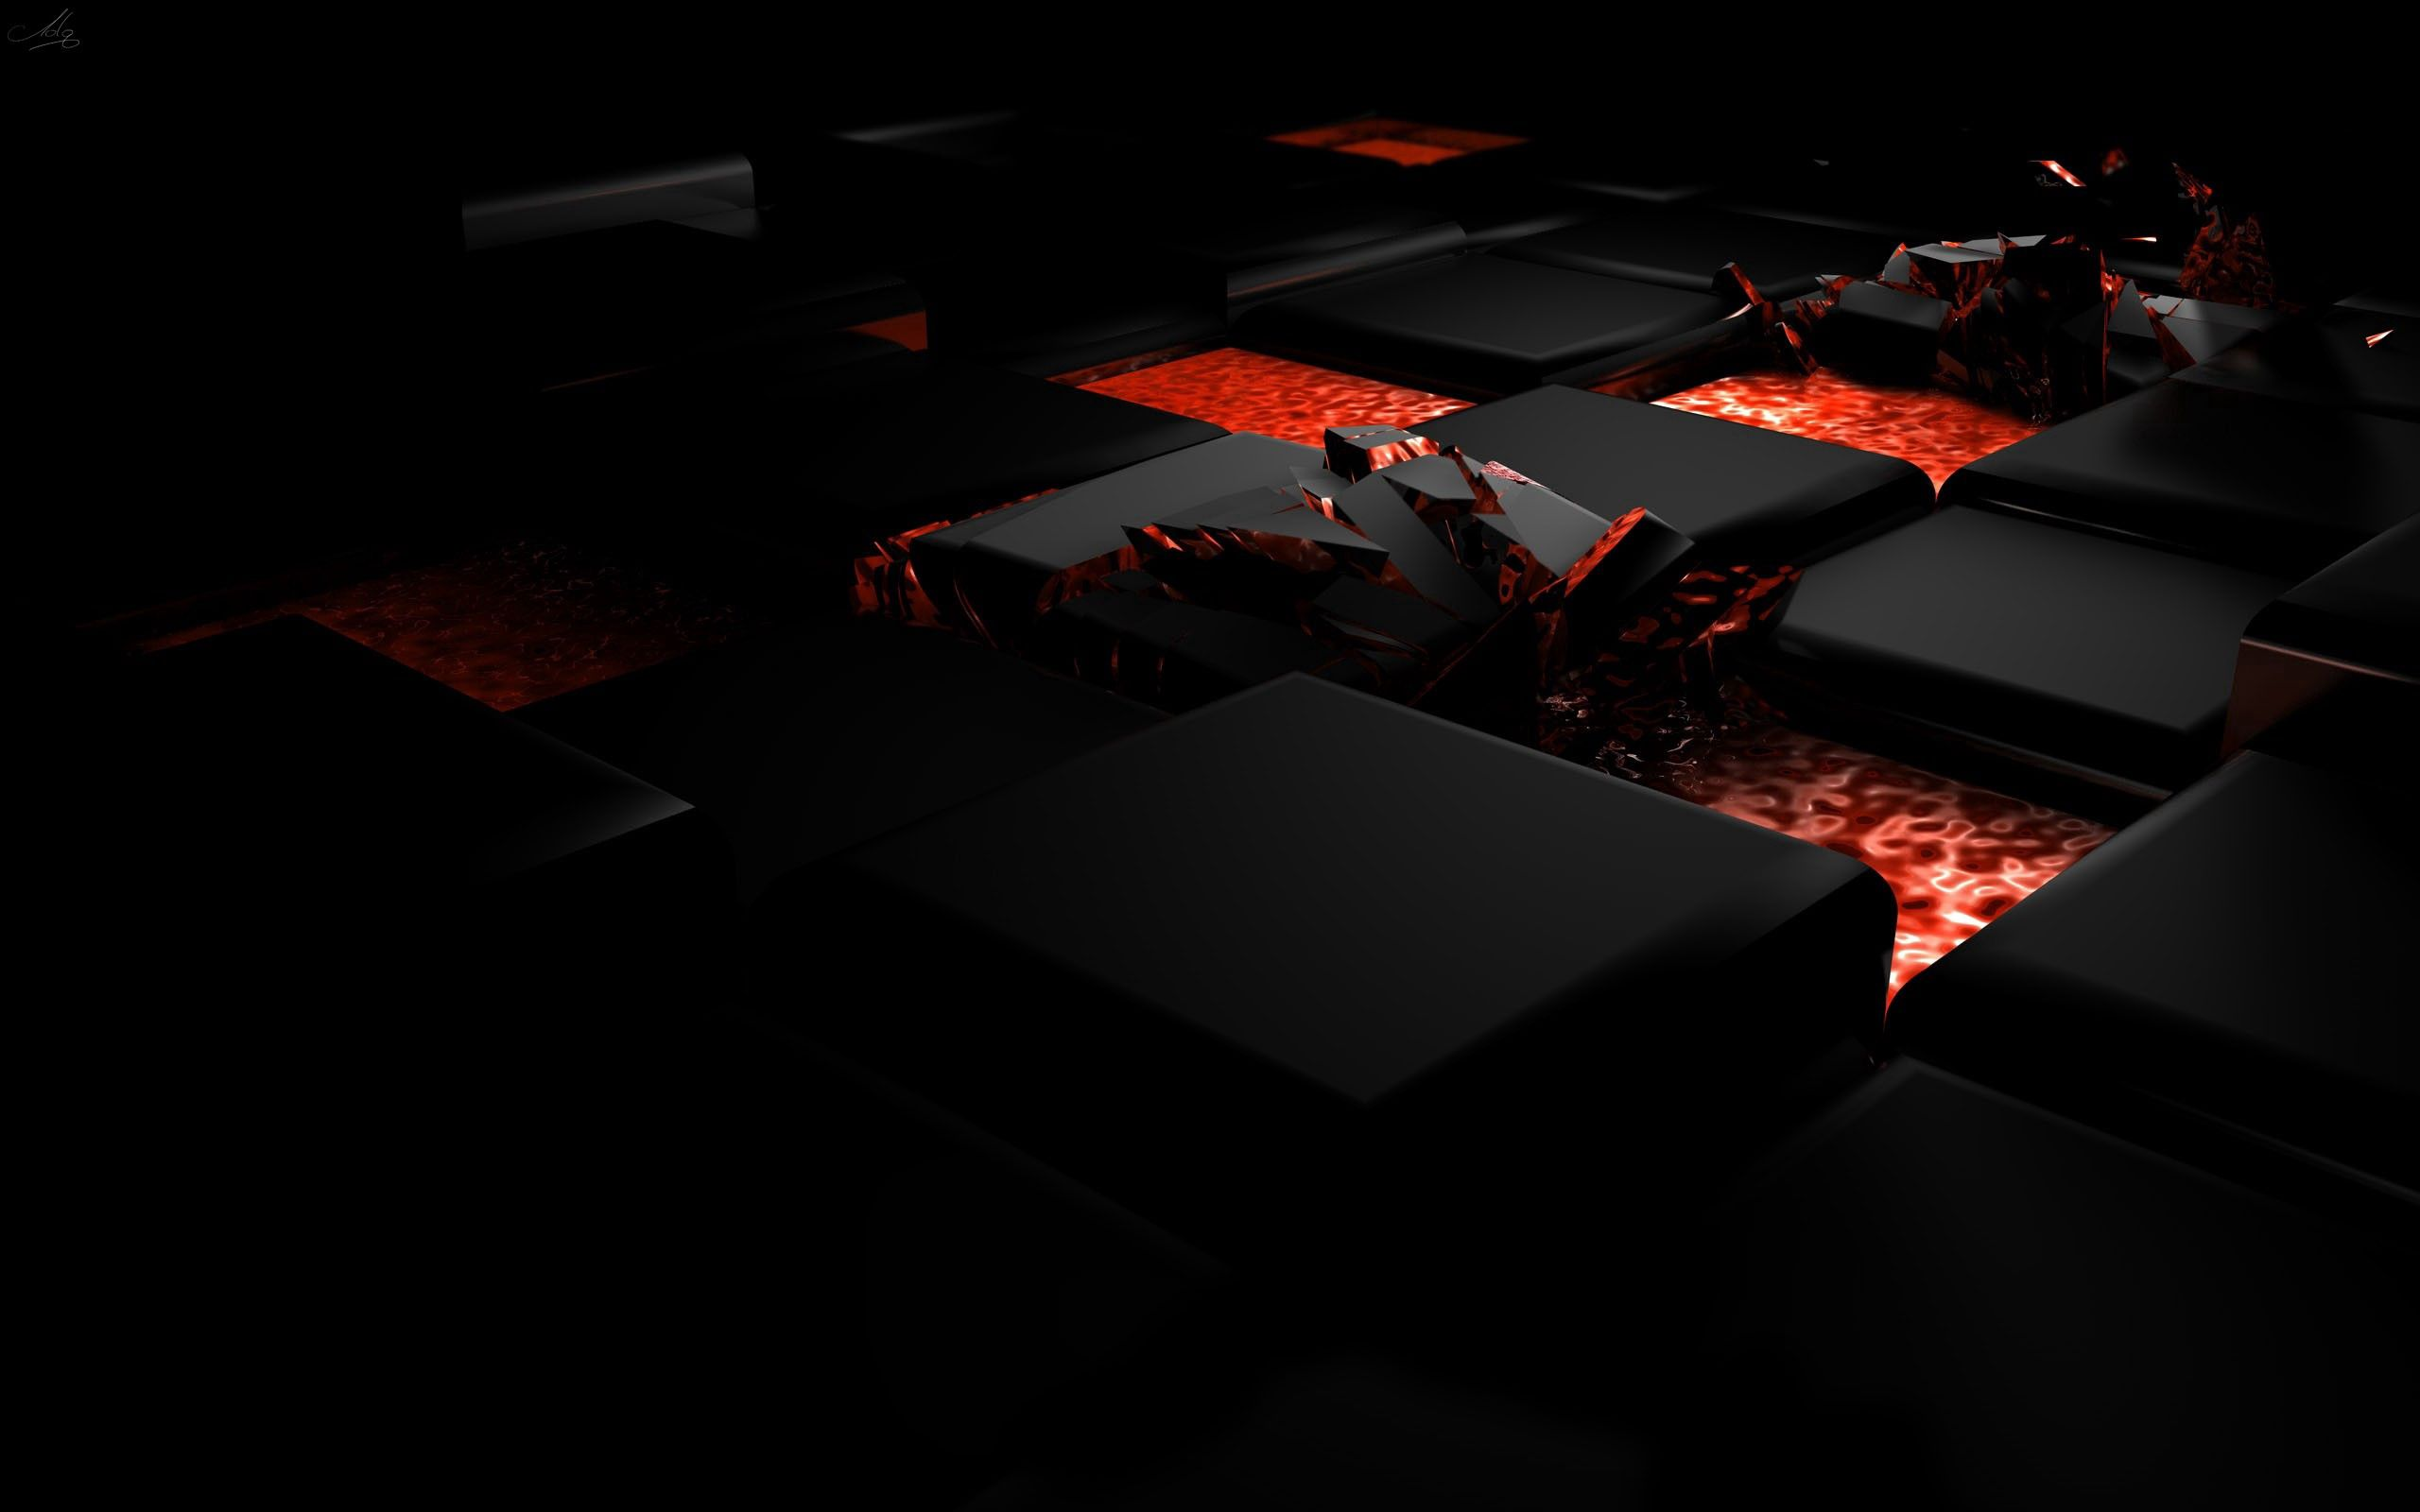 137697 download wallpaper 3D, Dark, Fire, Shine, Light, Cube, Alloy screensavers and pictures for free